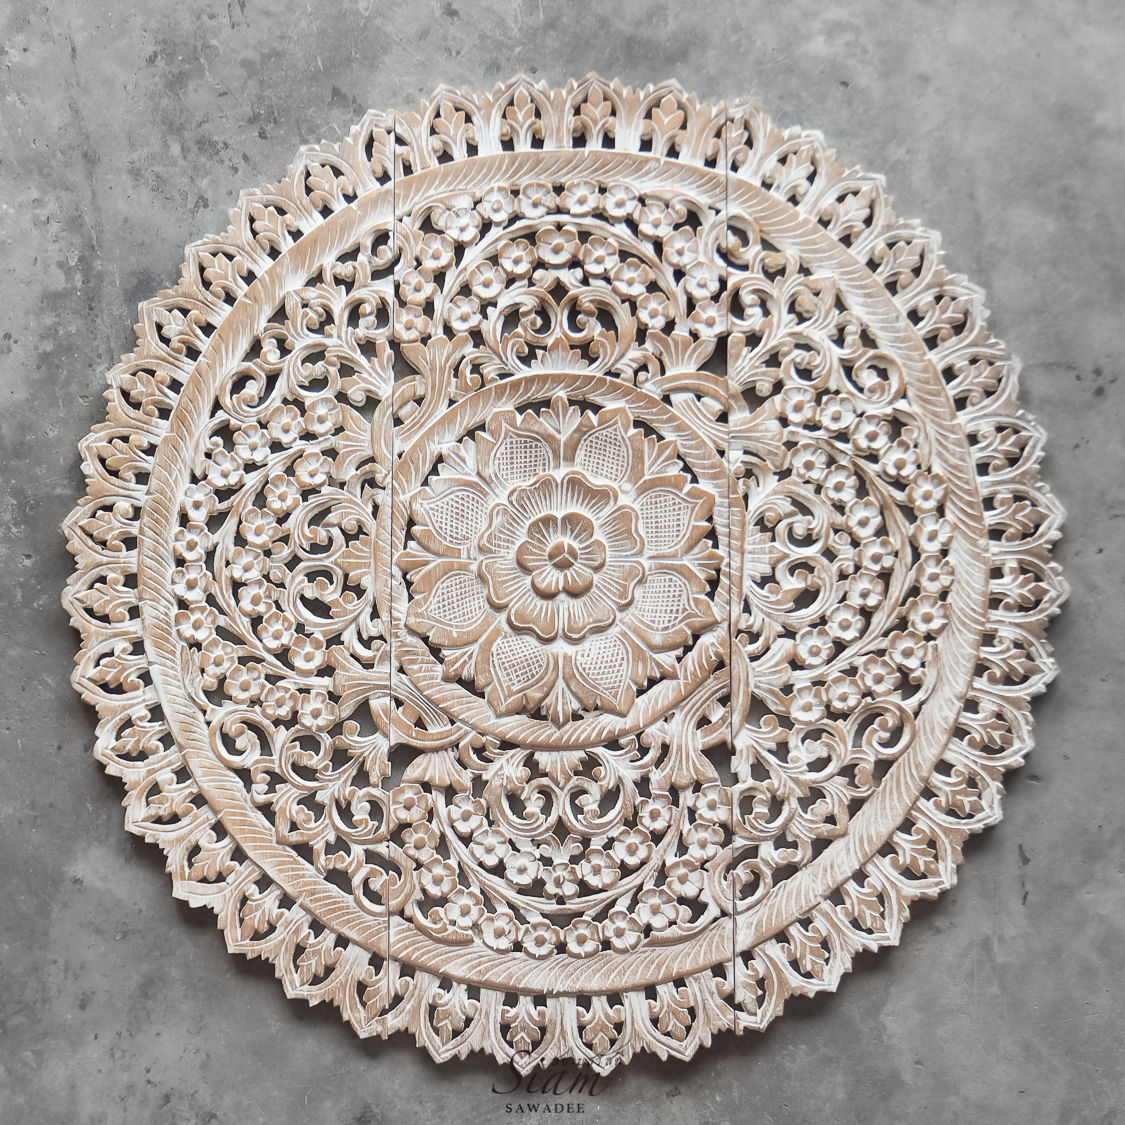 White Wash Wall Art Panel Reclaim Teak Wood From Thailand 3x3ft 1 - Mandala Wood Carving Wall Panel Decor